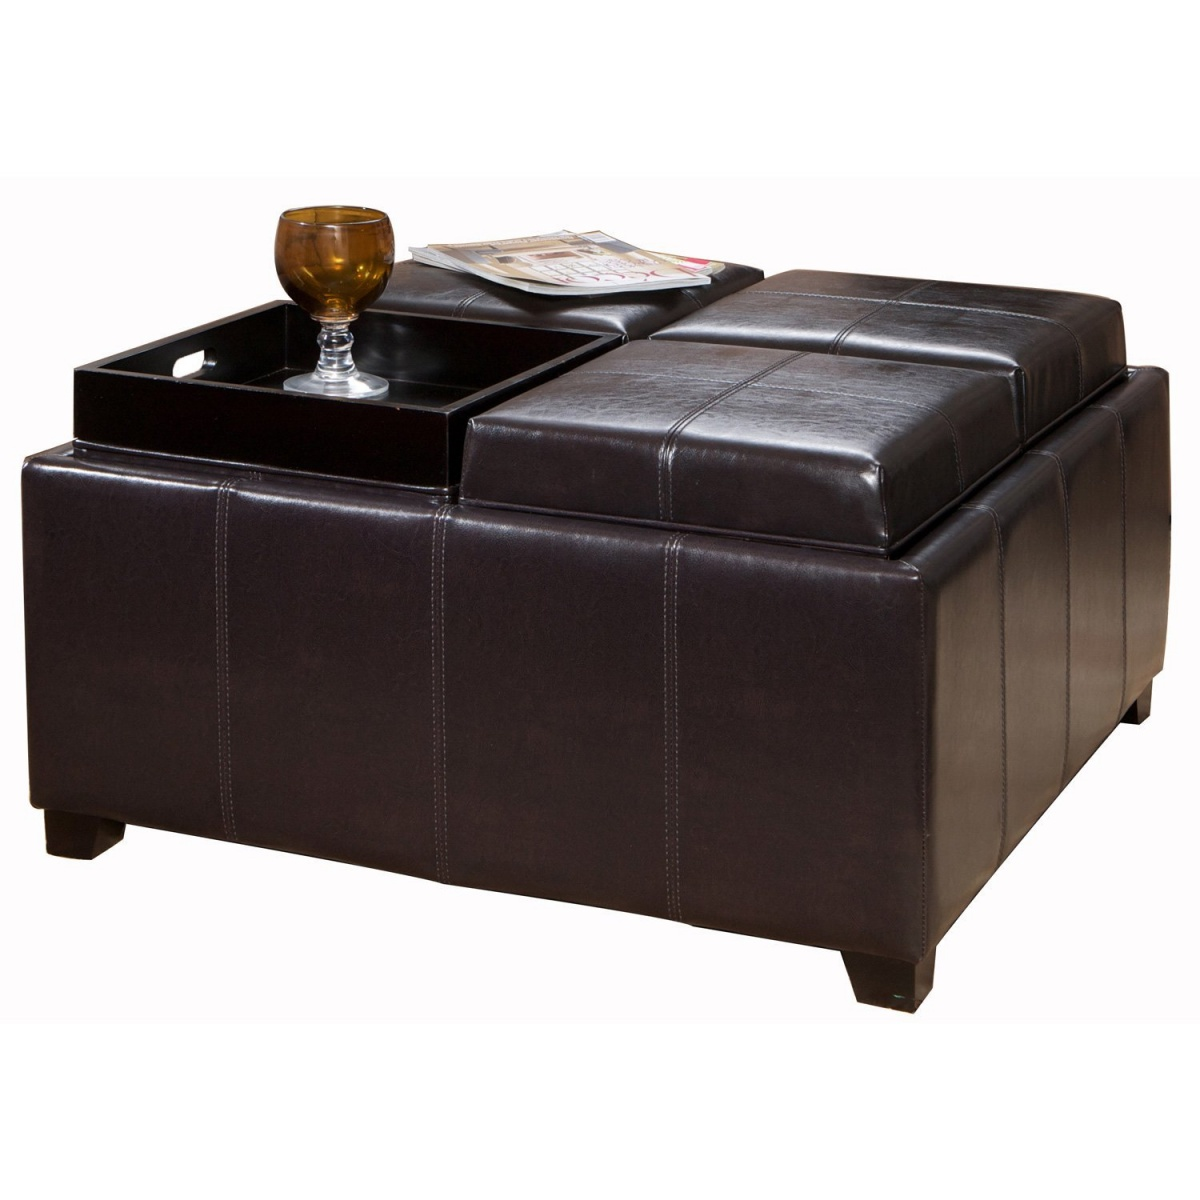 Picture of: Leather coffee table ottoman